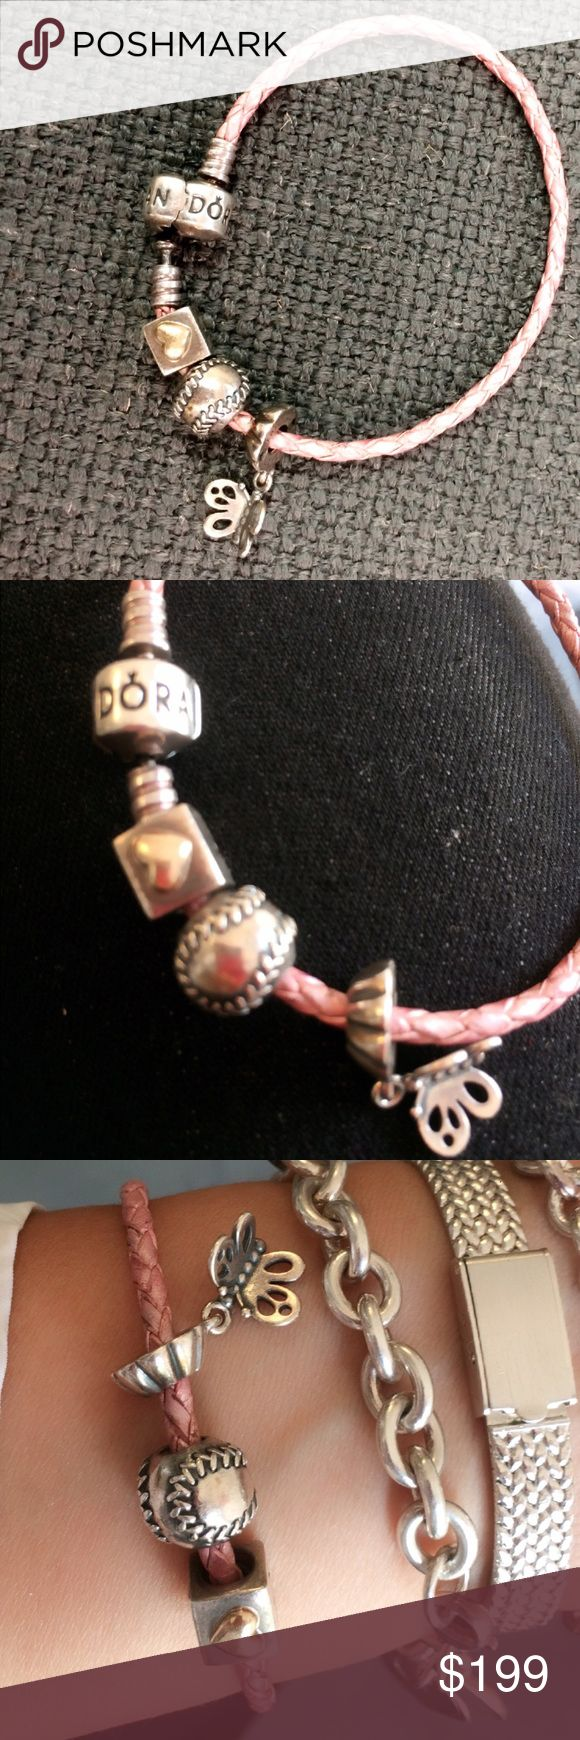 Authentic Pandora leather Pink bracelet W/ charms Pink rope bracelet a little bit worn but not noticeable. Comes with charms at 925 and a love box charm that has a 14k heart accent in 925 comboAS IS Pandora Jewelry Bracelets